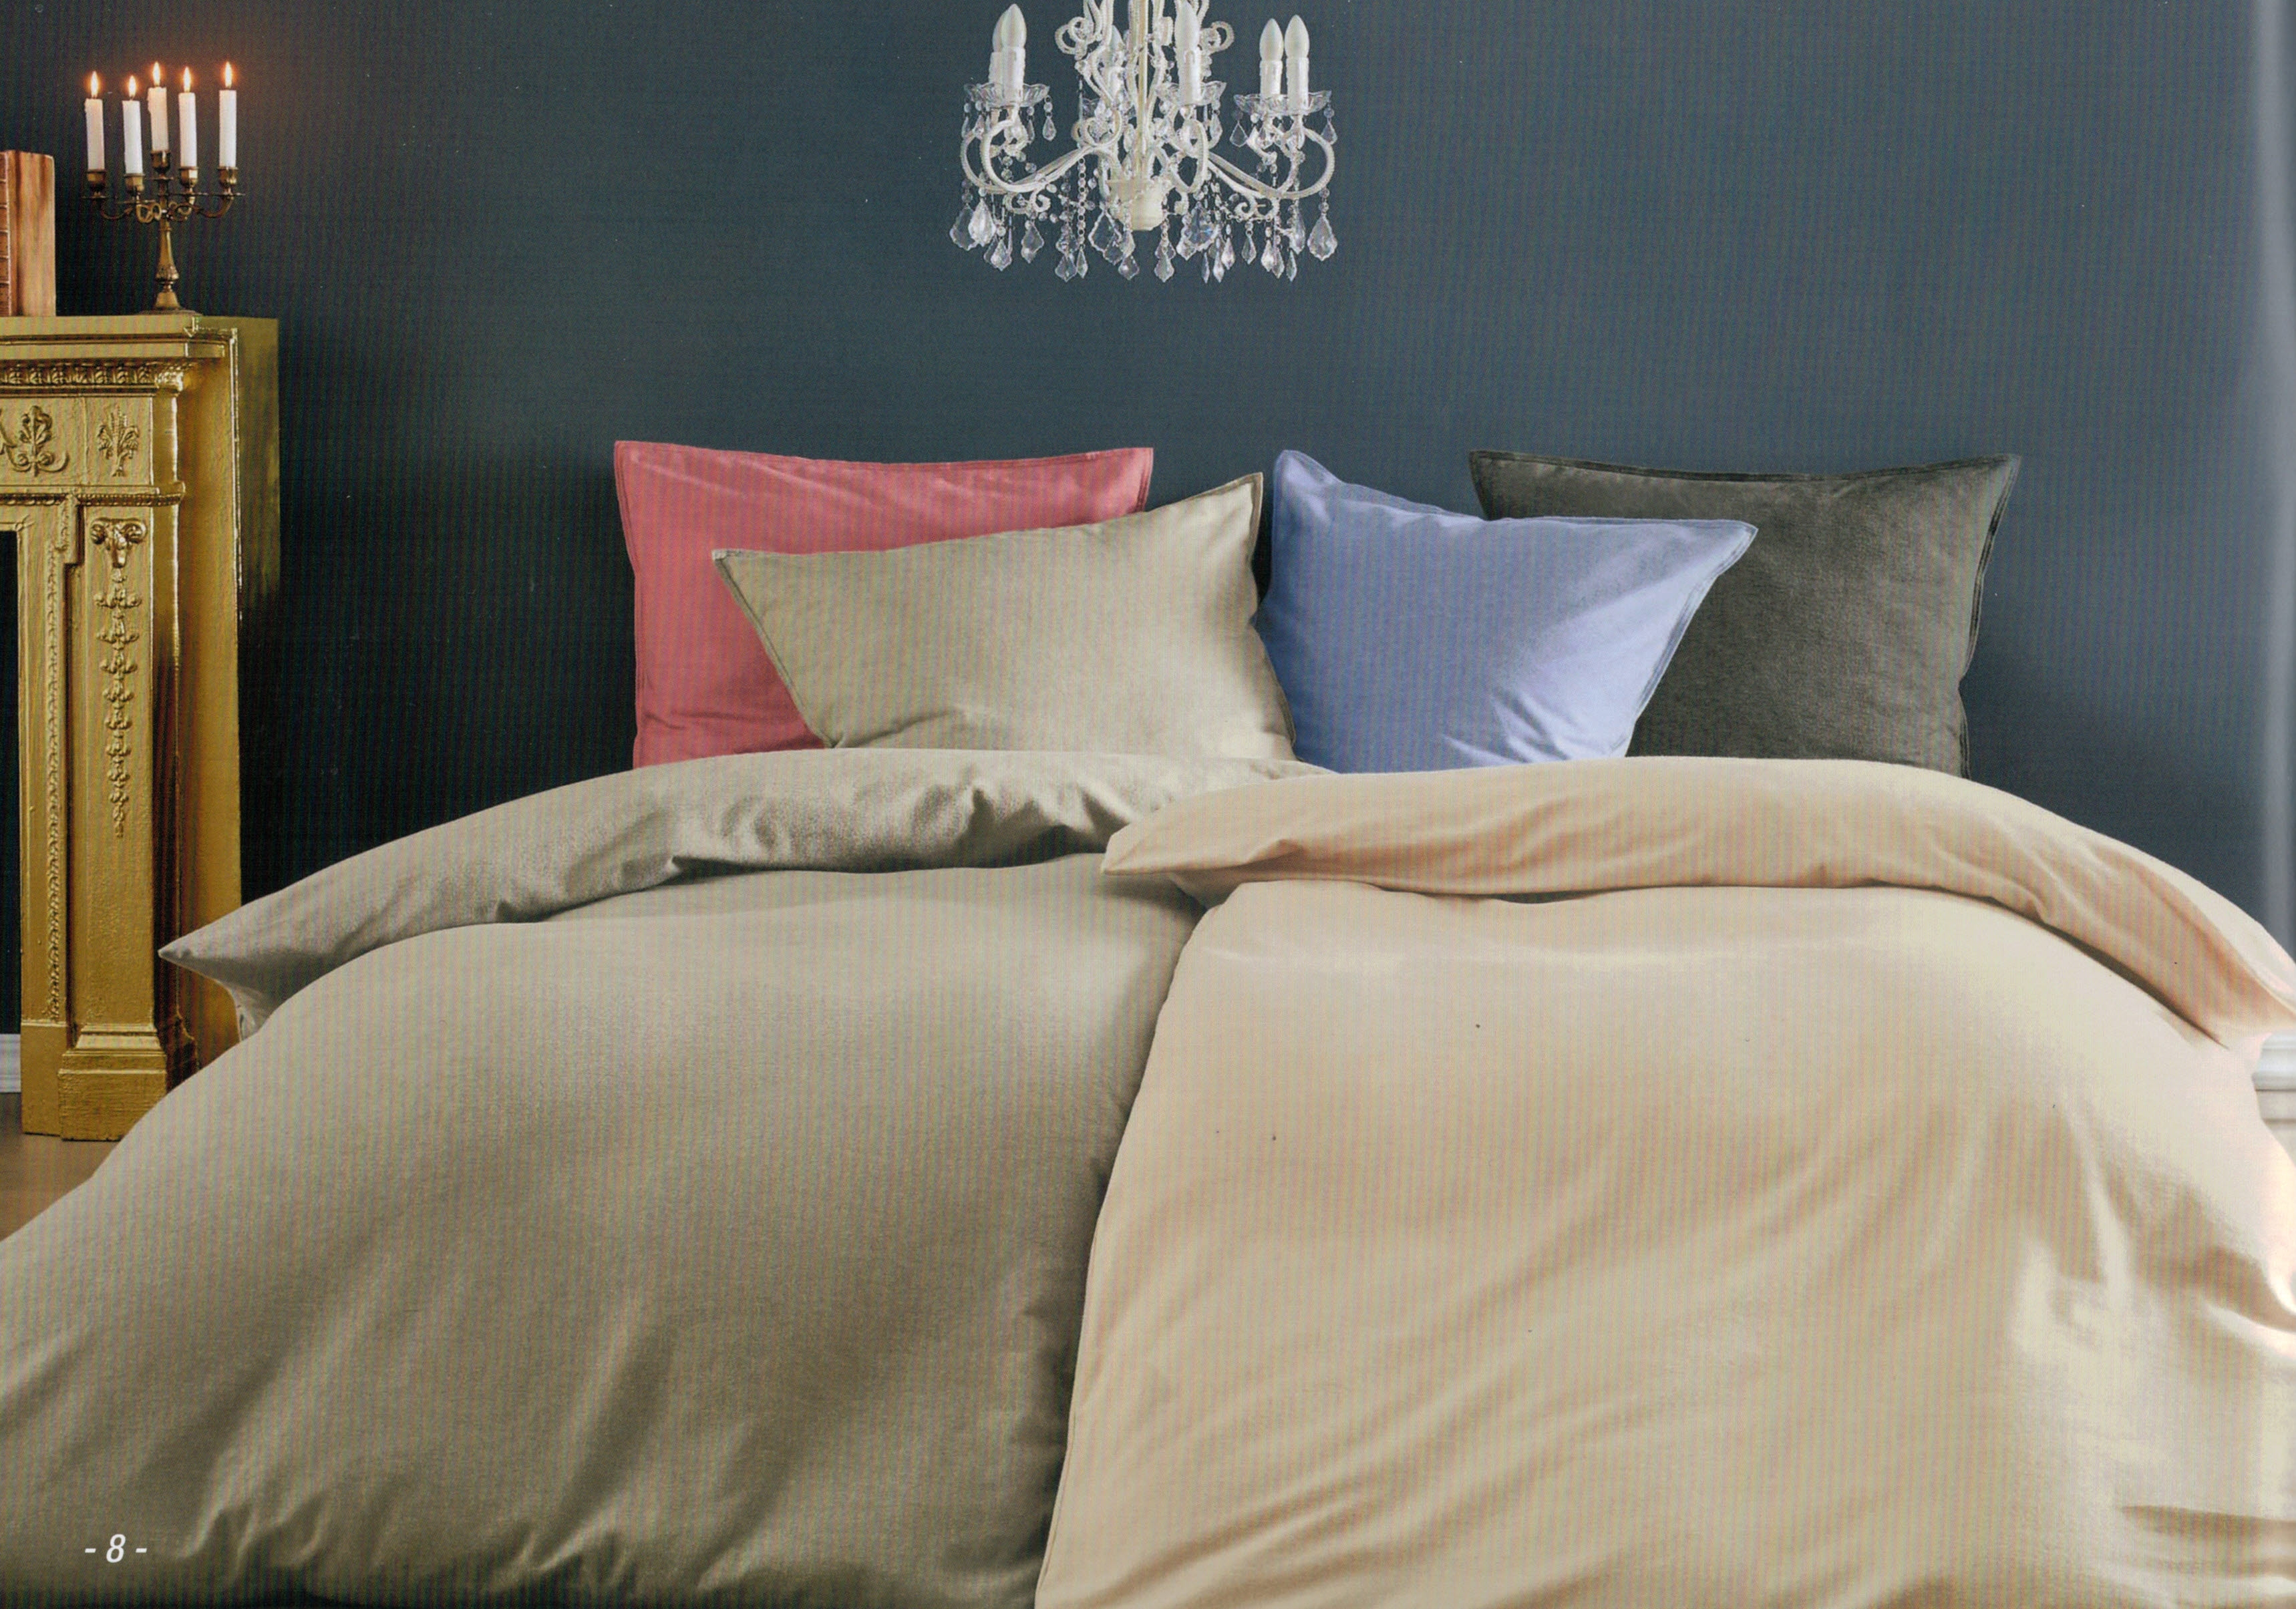 angebot dormisette winter bettw sche chambray flanell 135x200 80x80 ebay. Black Bedroom Furniture Sets. Home Design Ideas